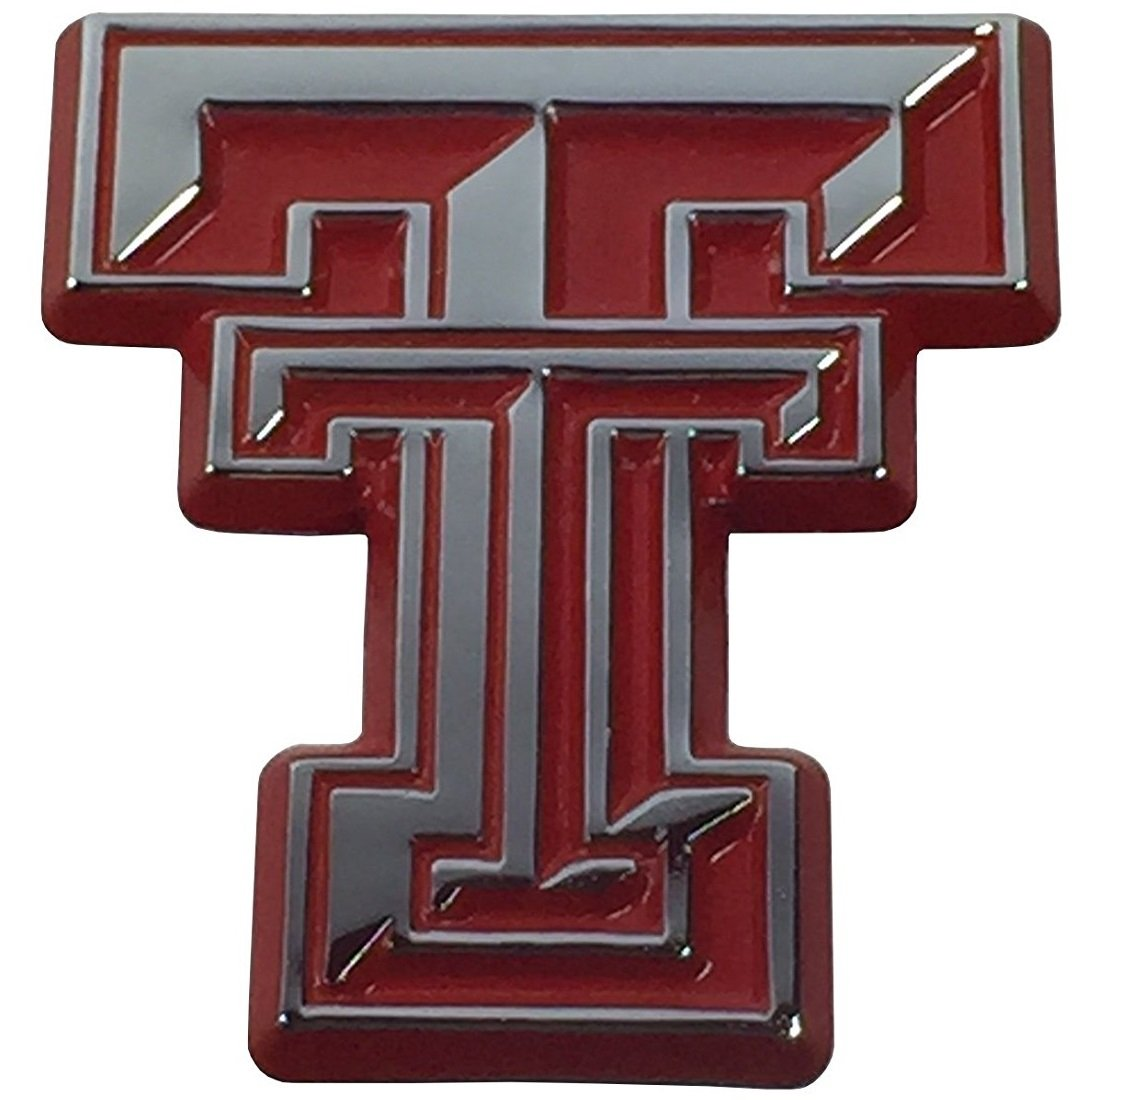 Texas Tech University Red Raiders METAL Auto Emblem - Many Different Colors Available! (Chrome w/ Red Trim) AMG Auto Emblems